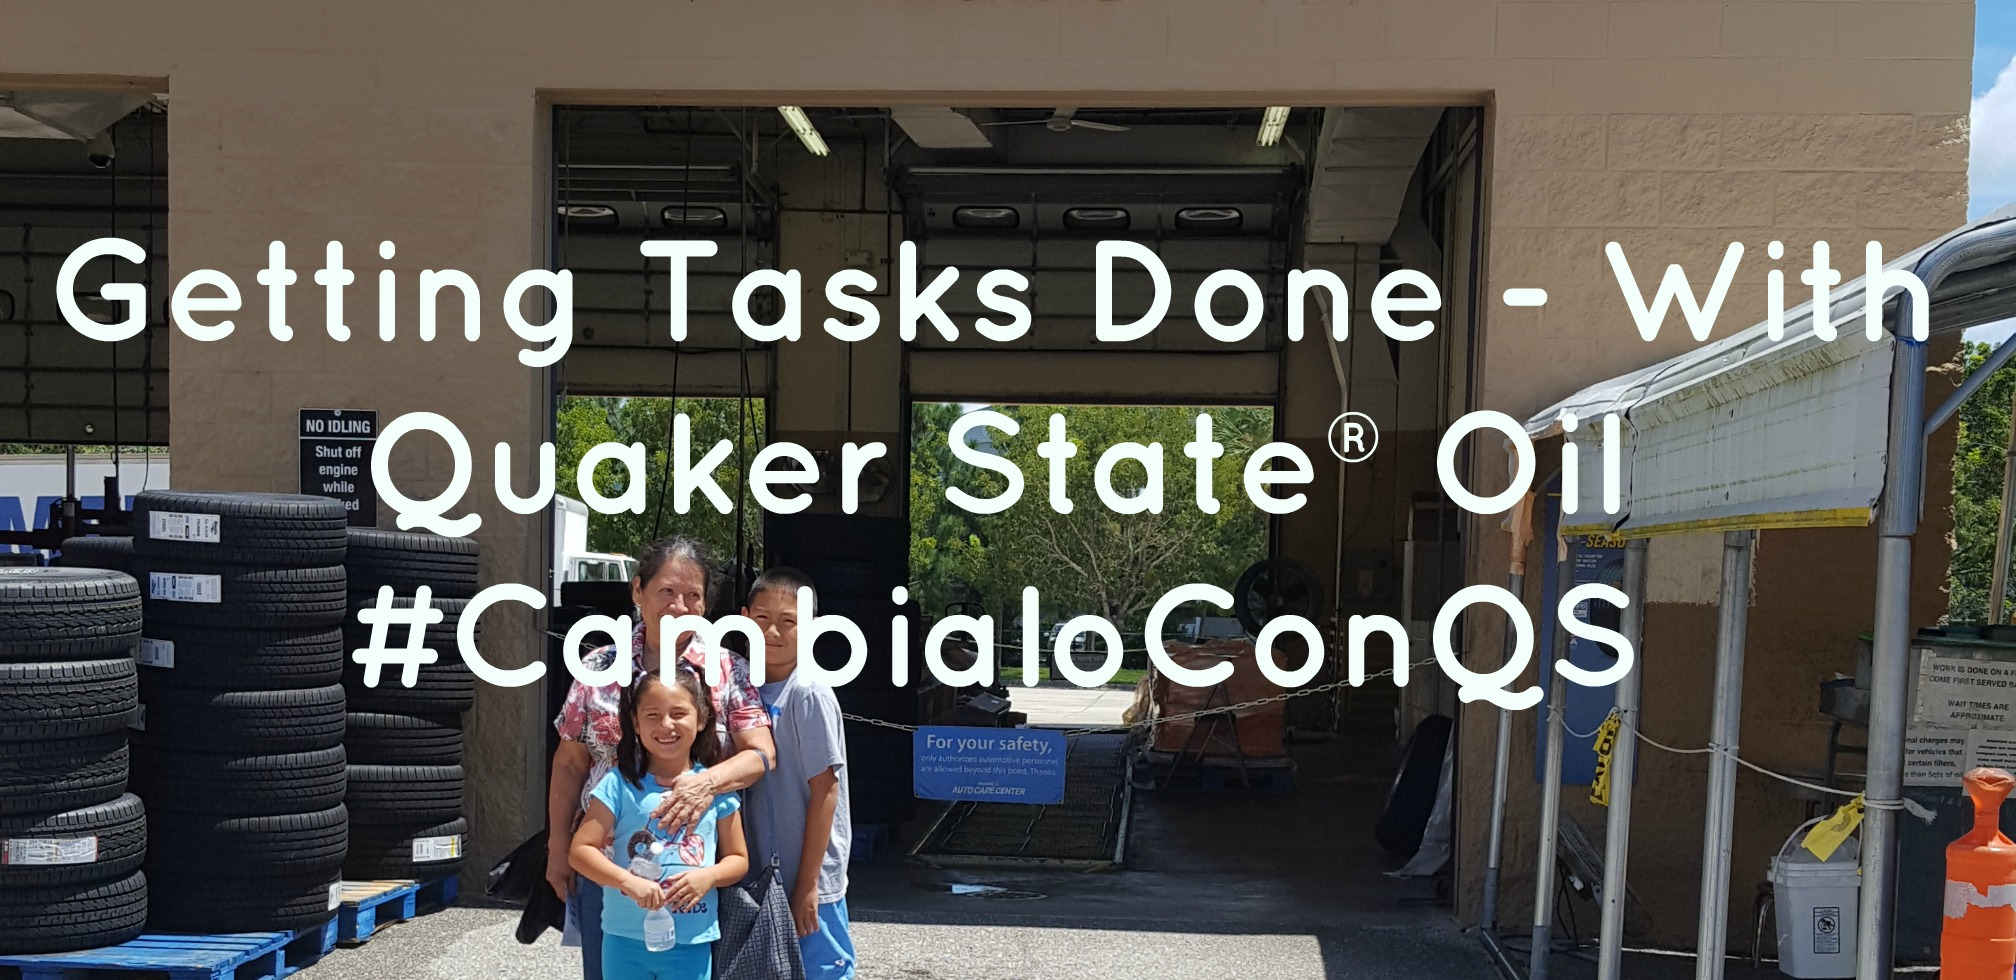 Getting Tasks Done With Quaker State Oil  Walmart Auto